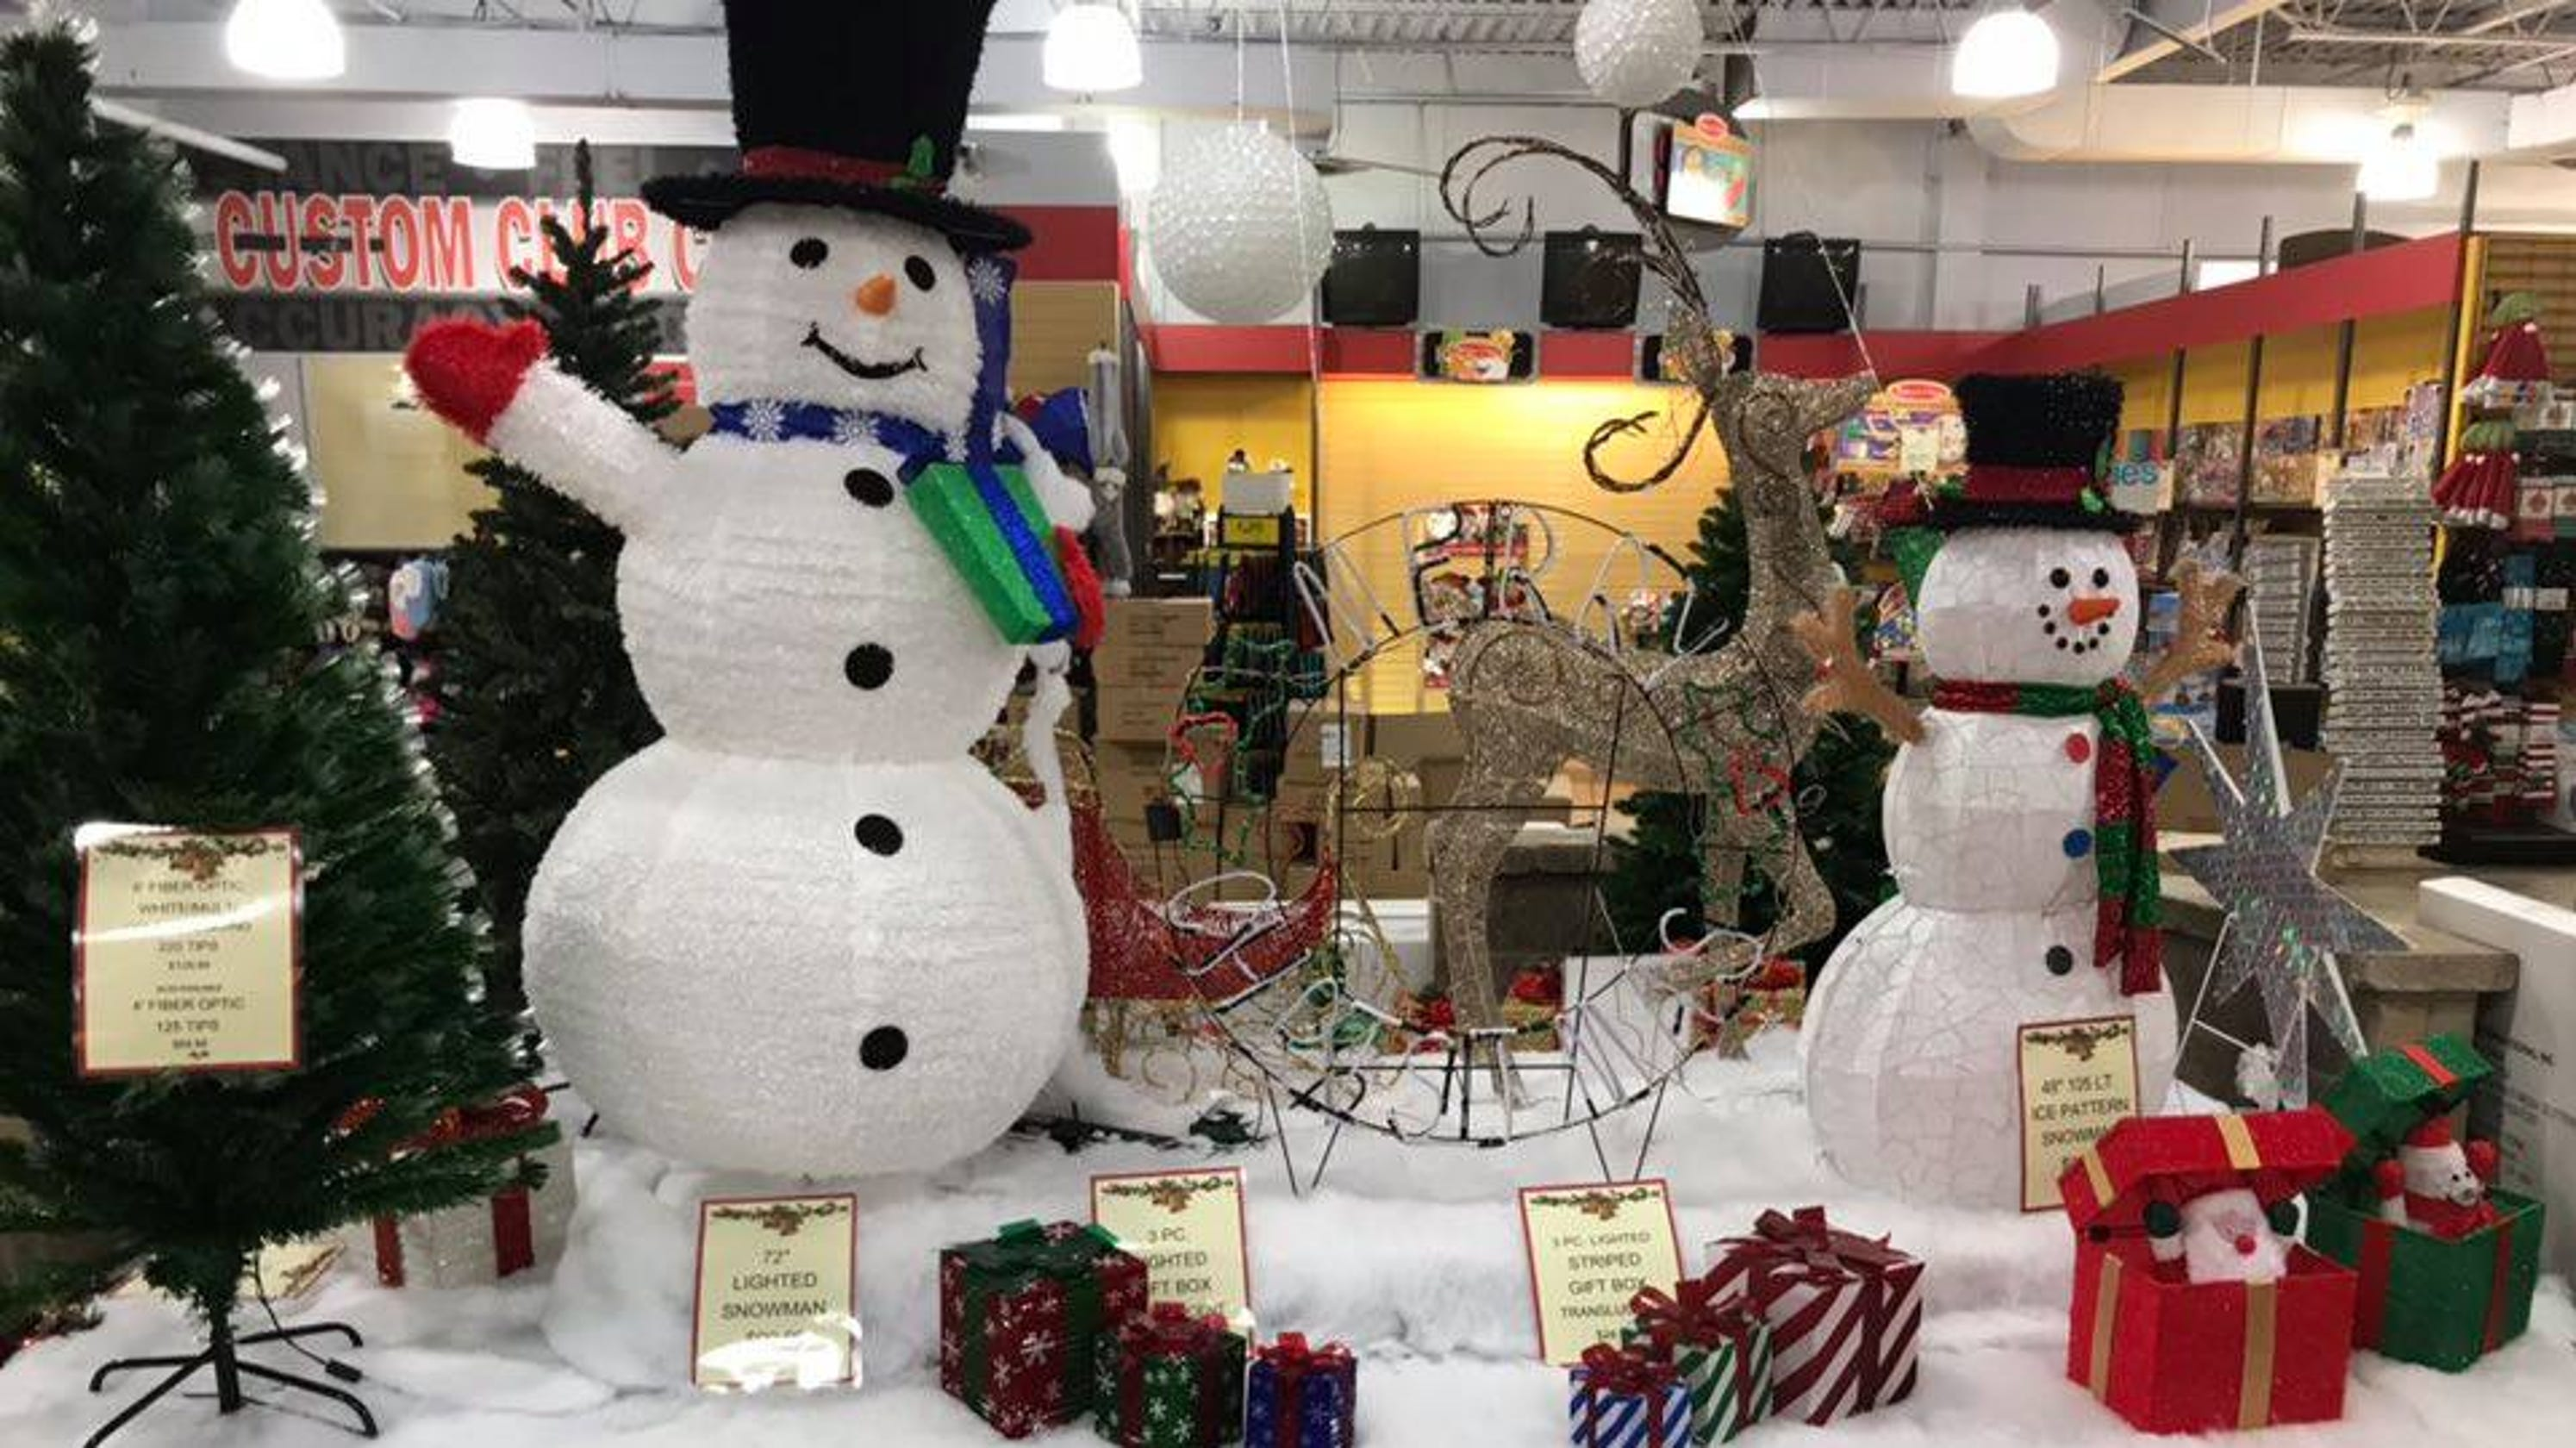 Pop-up store brings Christmas items to Cherry Hill NJ shopping center